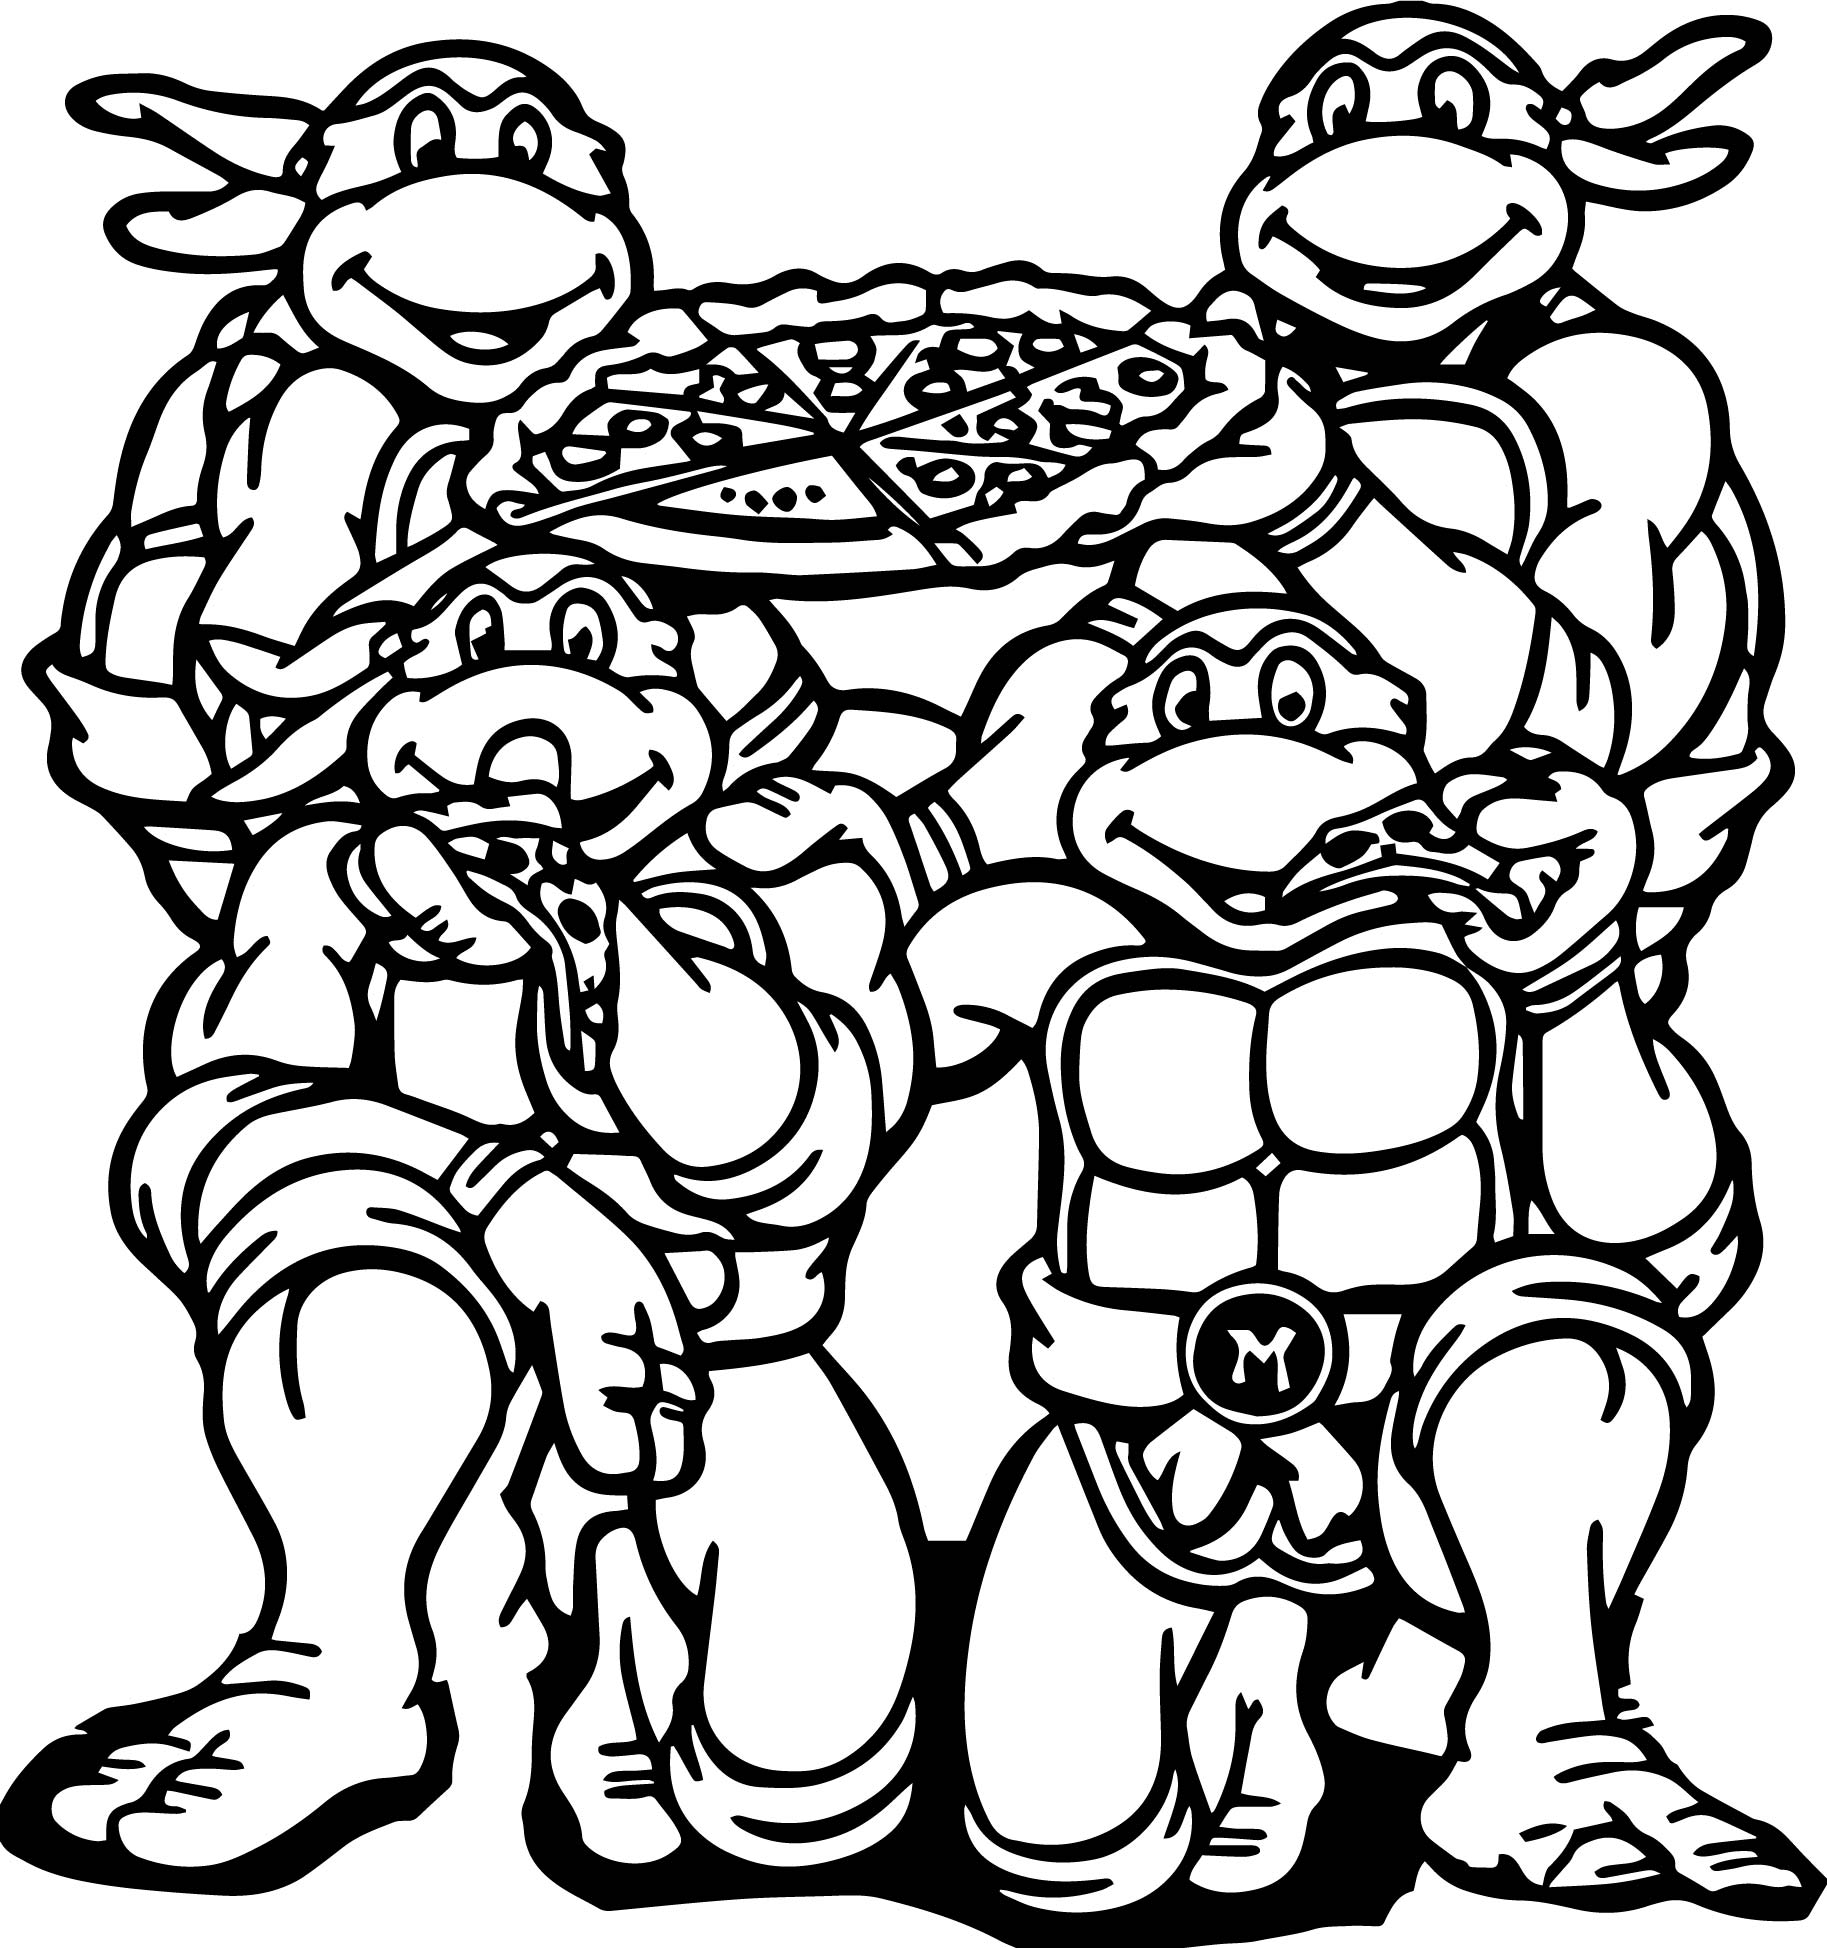 ninja turtle eat pizza coloring page | wecoloringpage - Ninja Turtle Pizza Coloring Pages